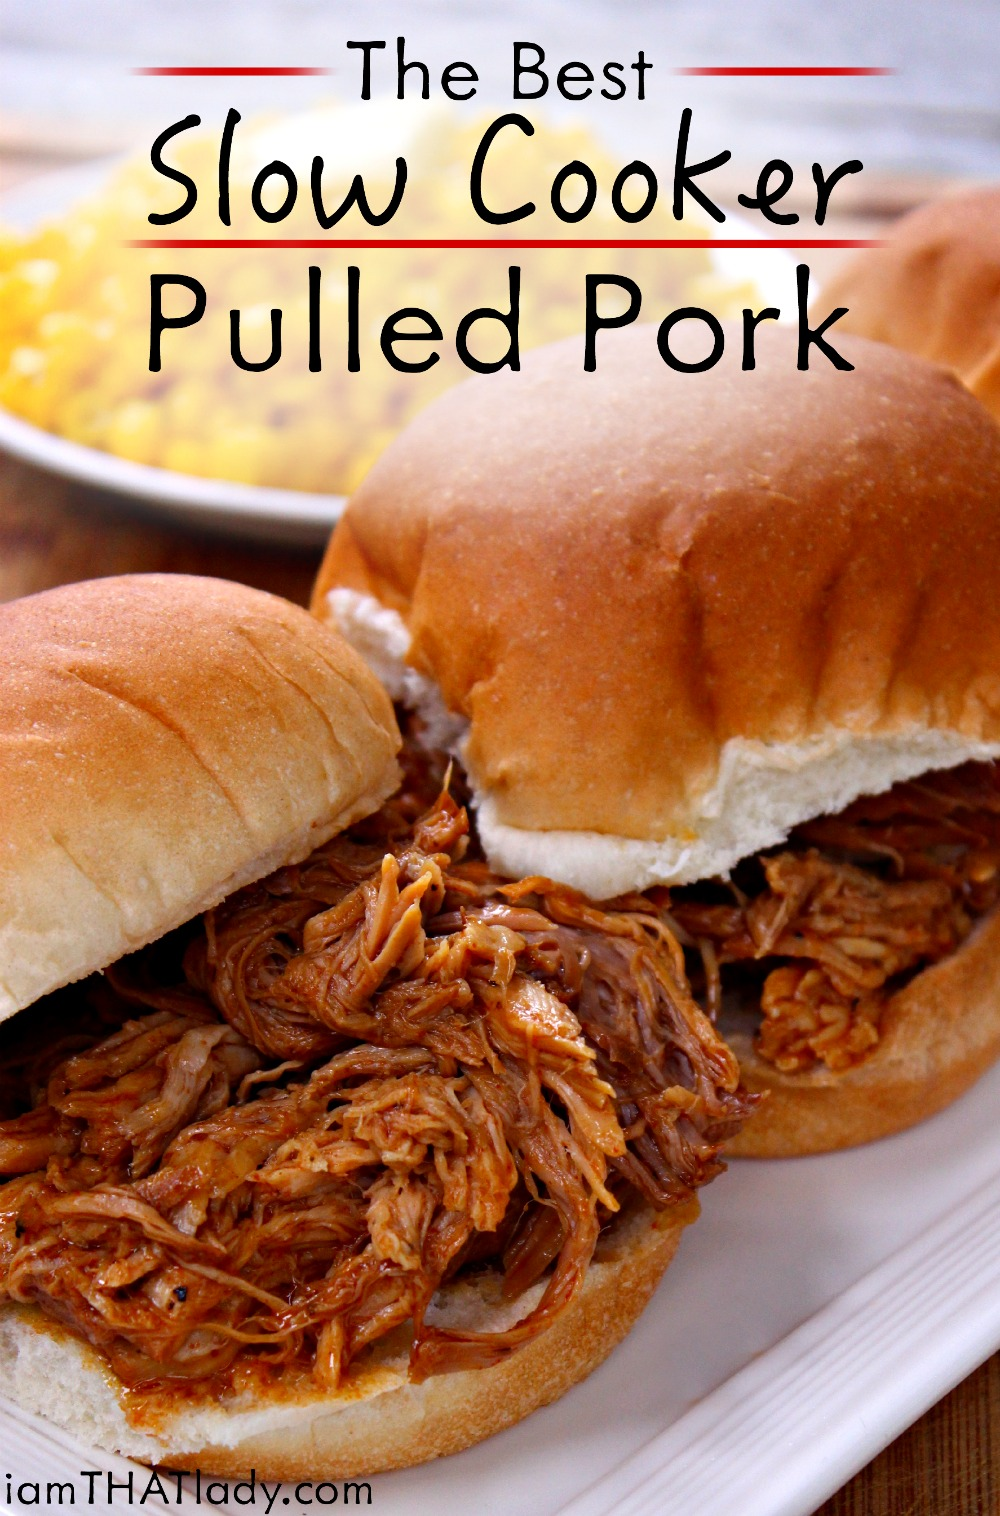 Pulled pork shoulder barbecue recipe